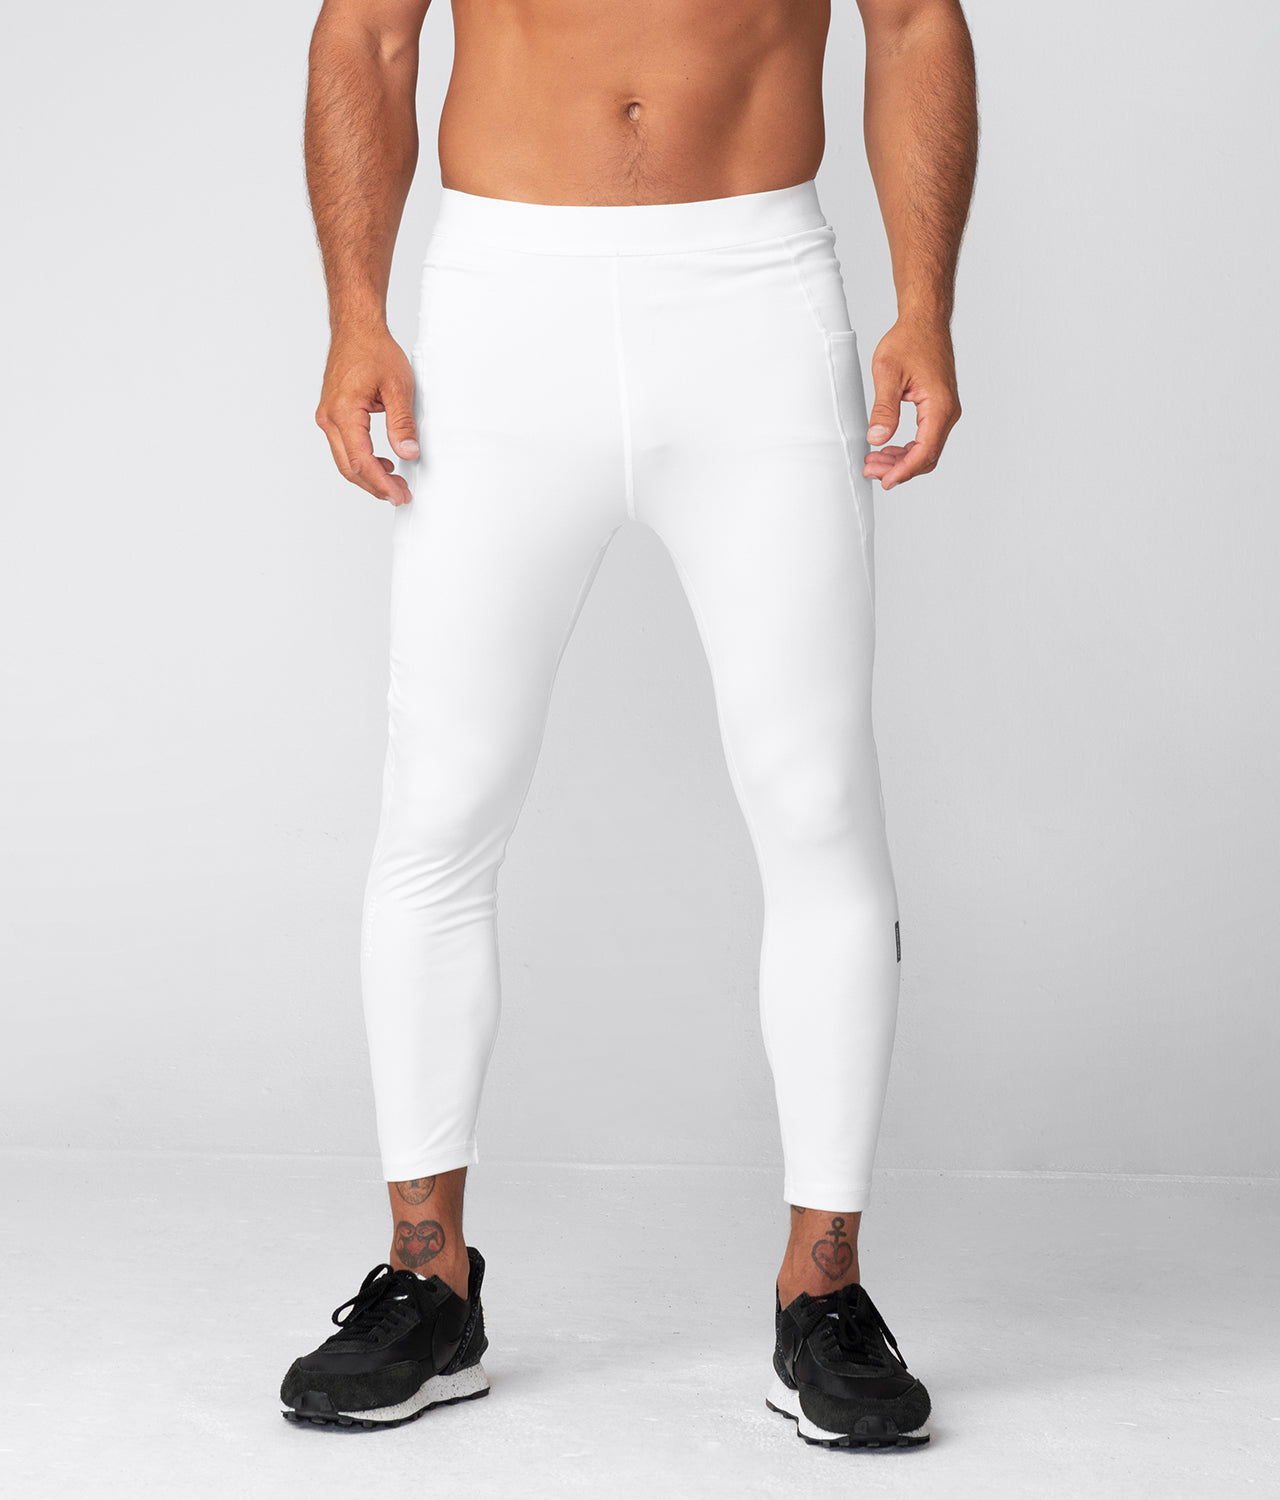 Born Tough Side Pockets Compression Signature Elastane Blend Gym Workout Pants For Men White